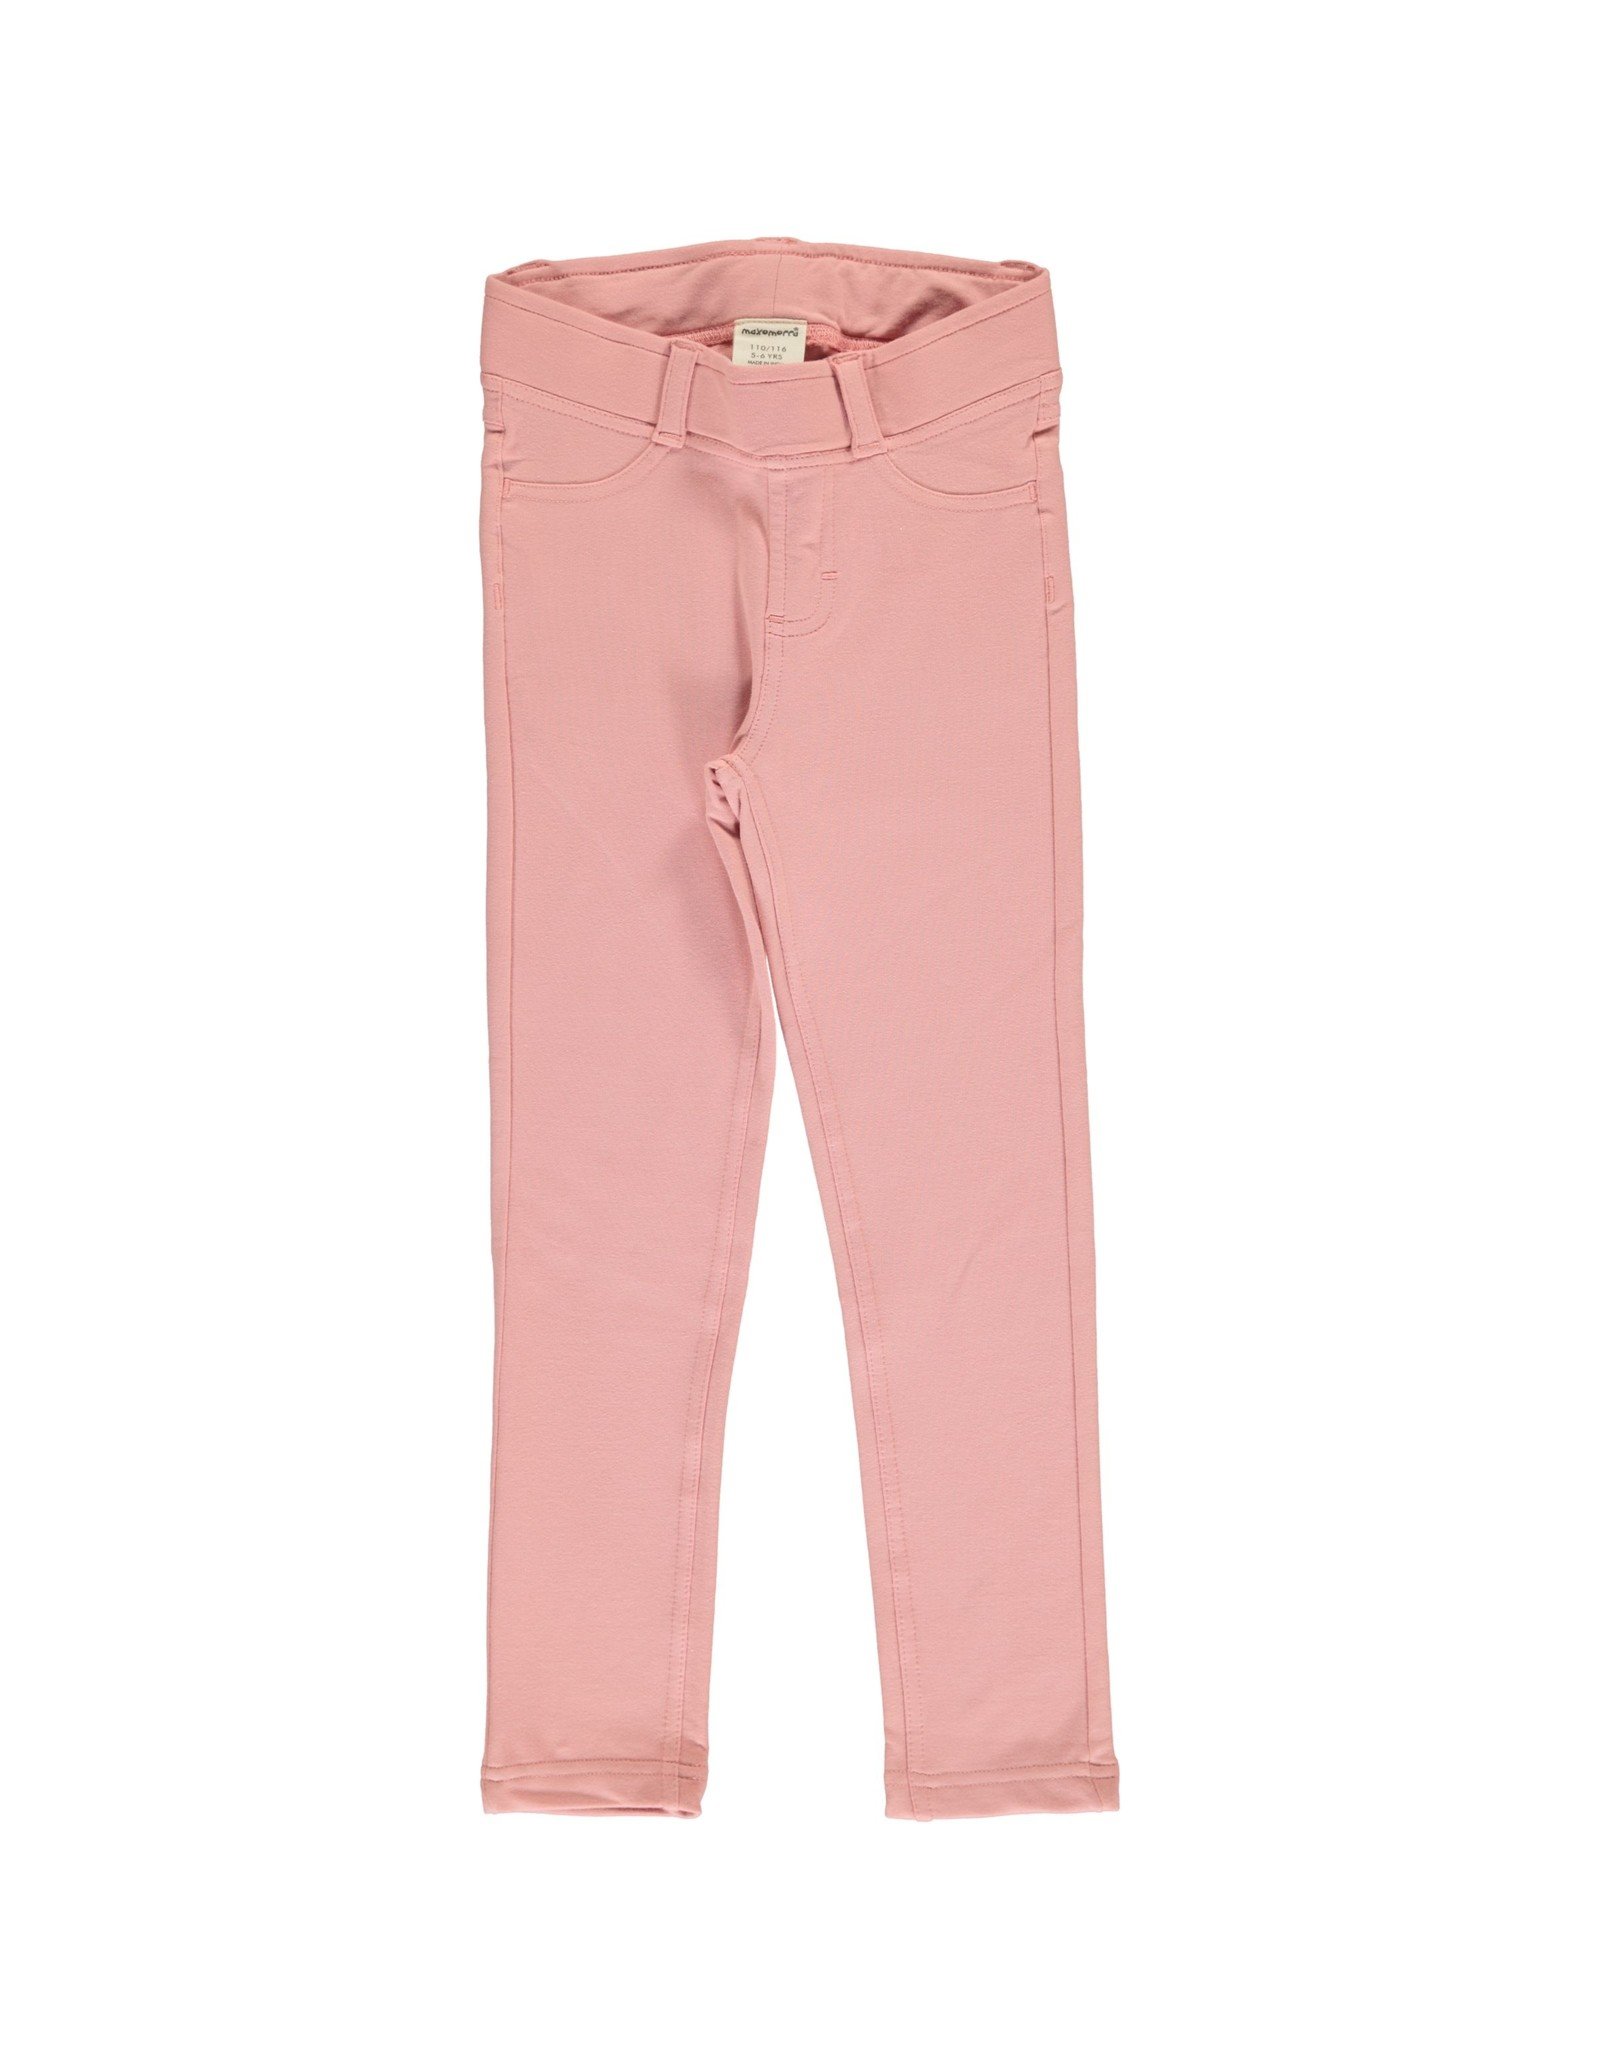 Maxomorra Maxomorra Dusty Pink Treggings